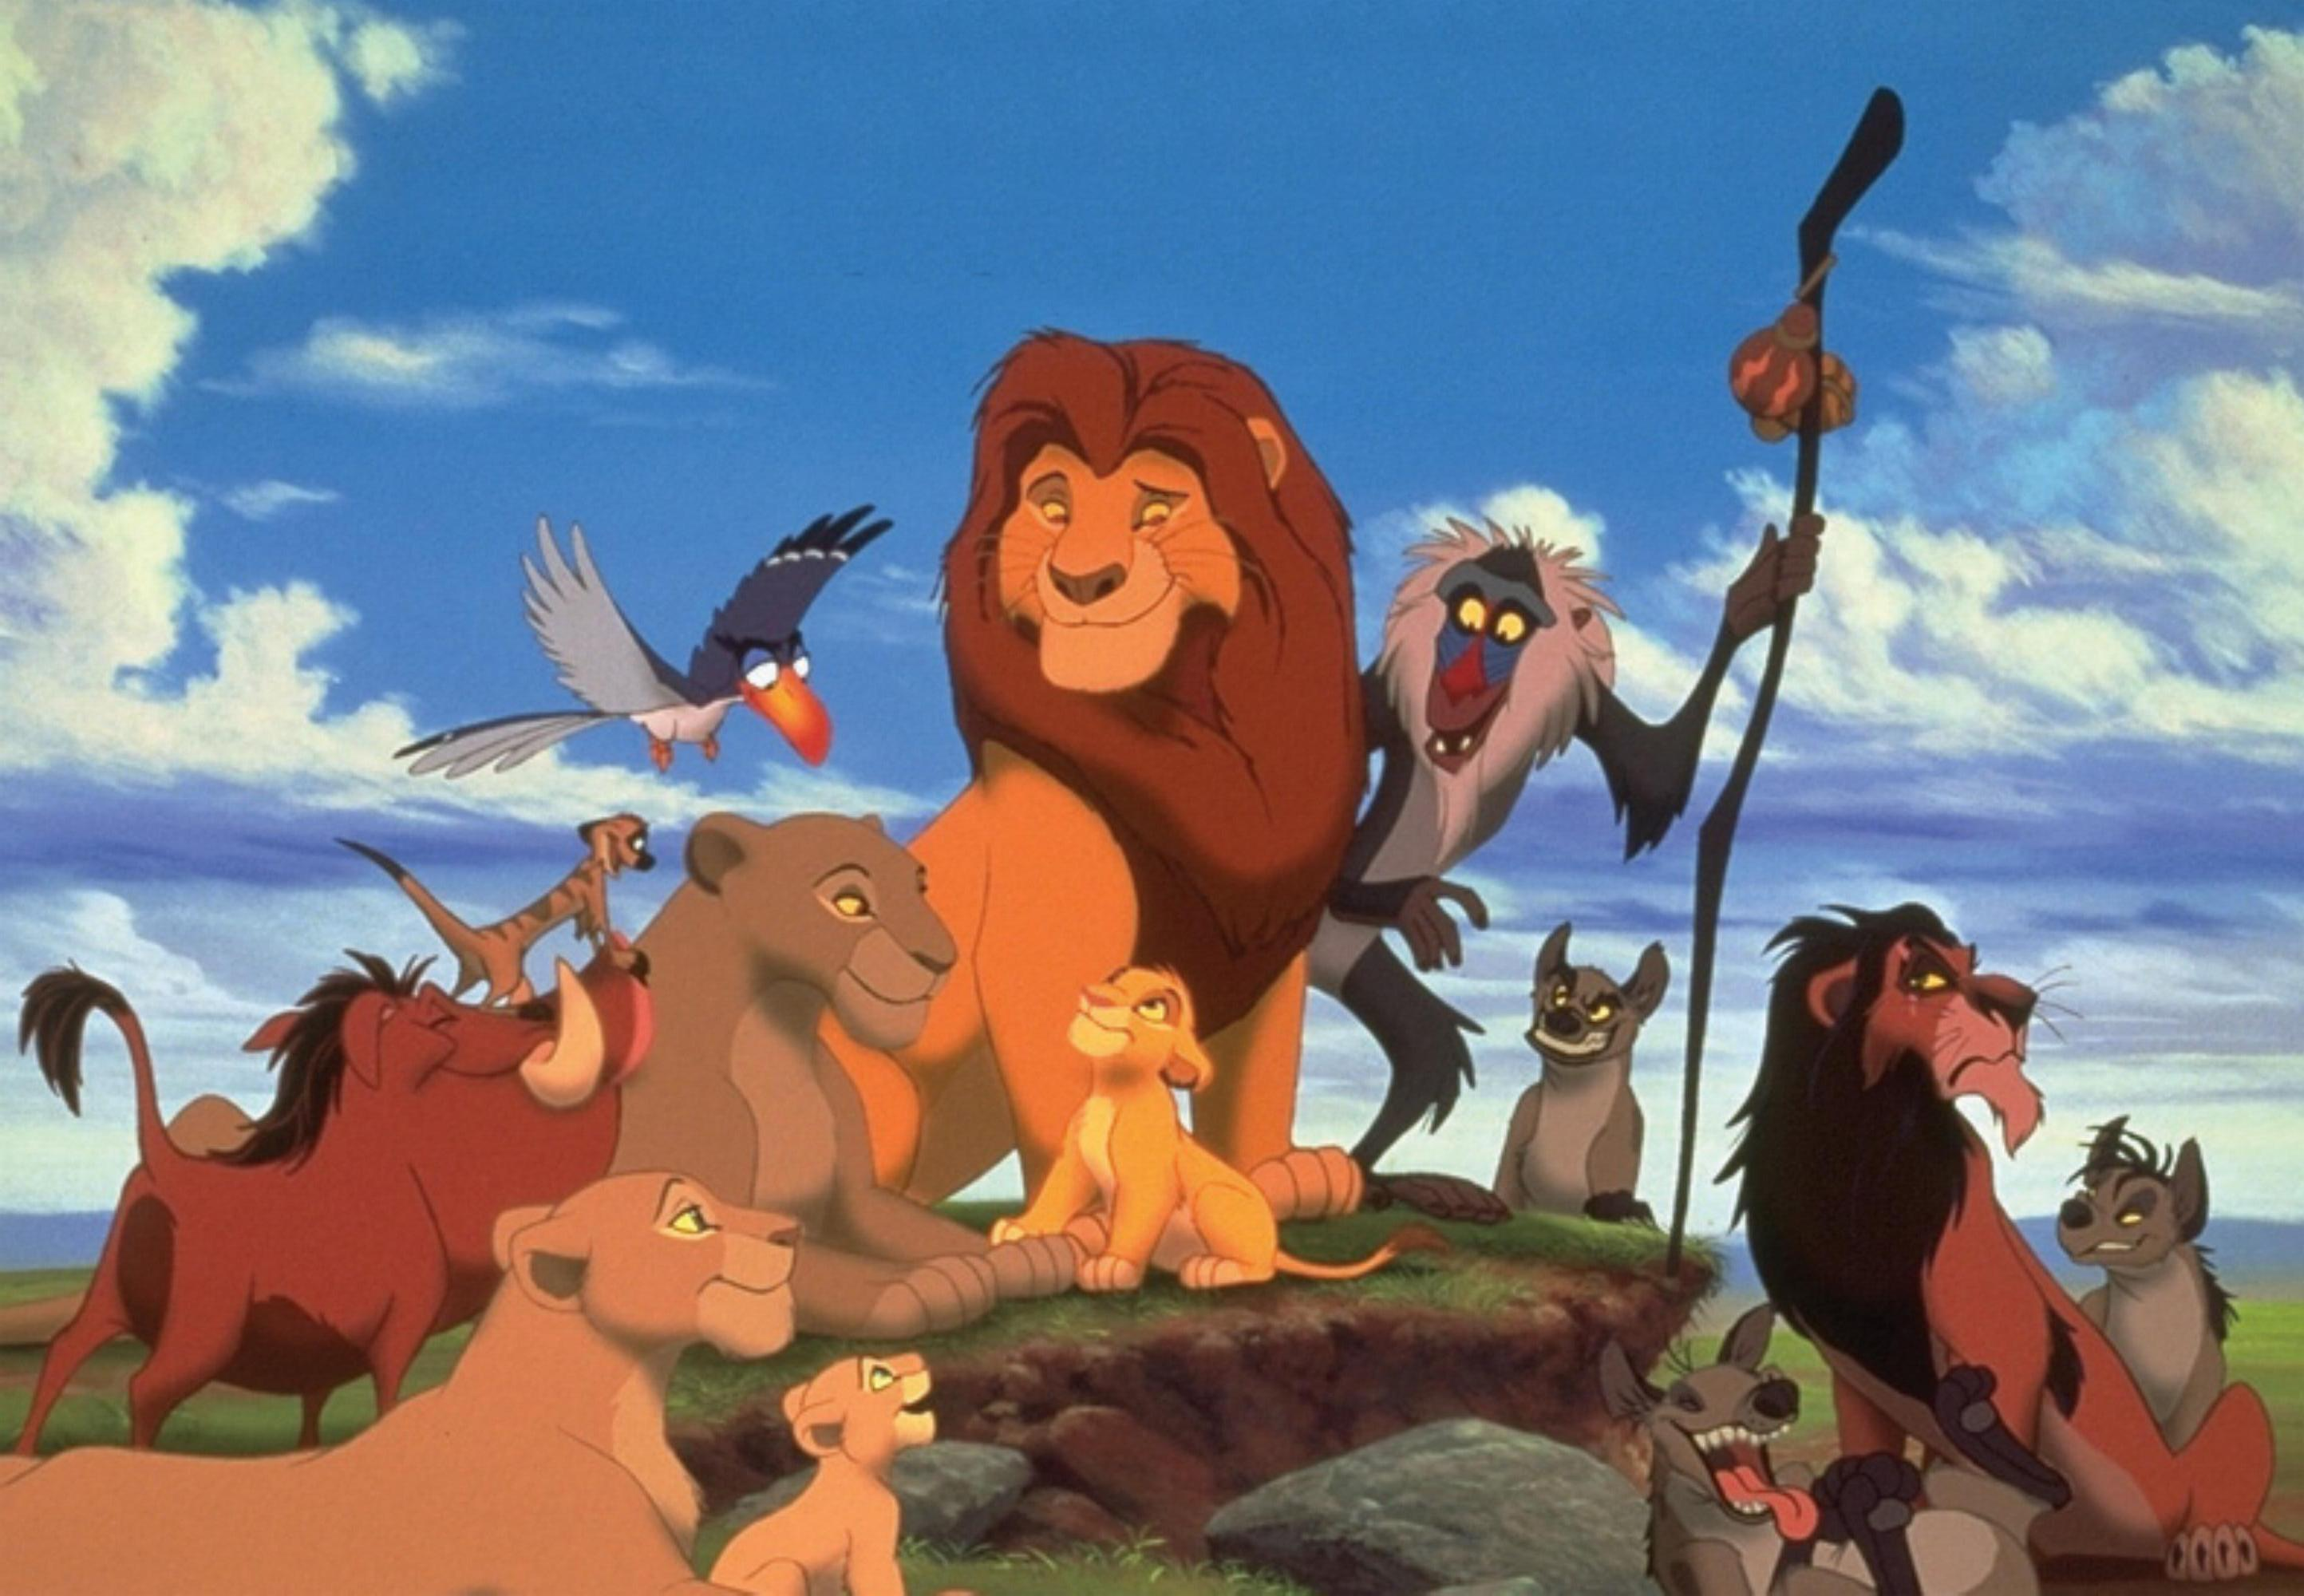 Simba The Lion King Hyenas Mufasa Nala Timon Pumba